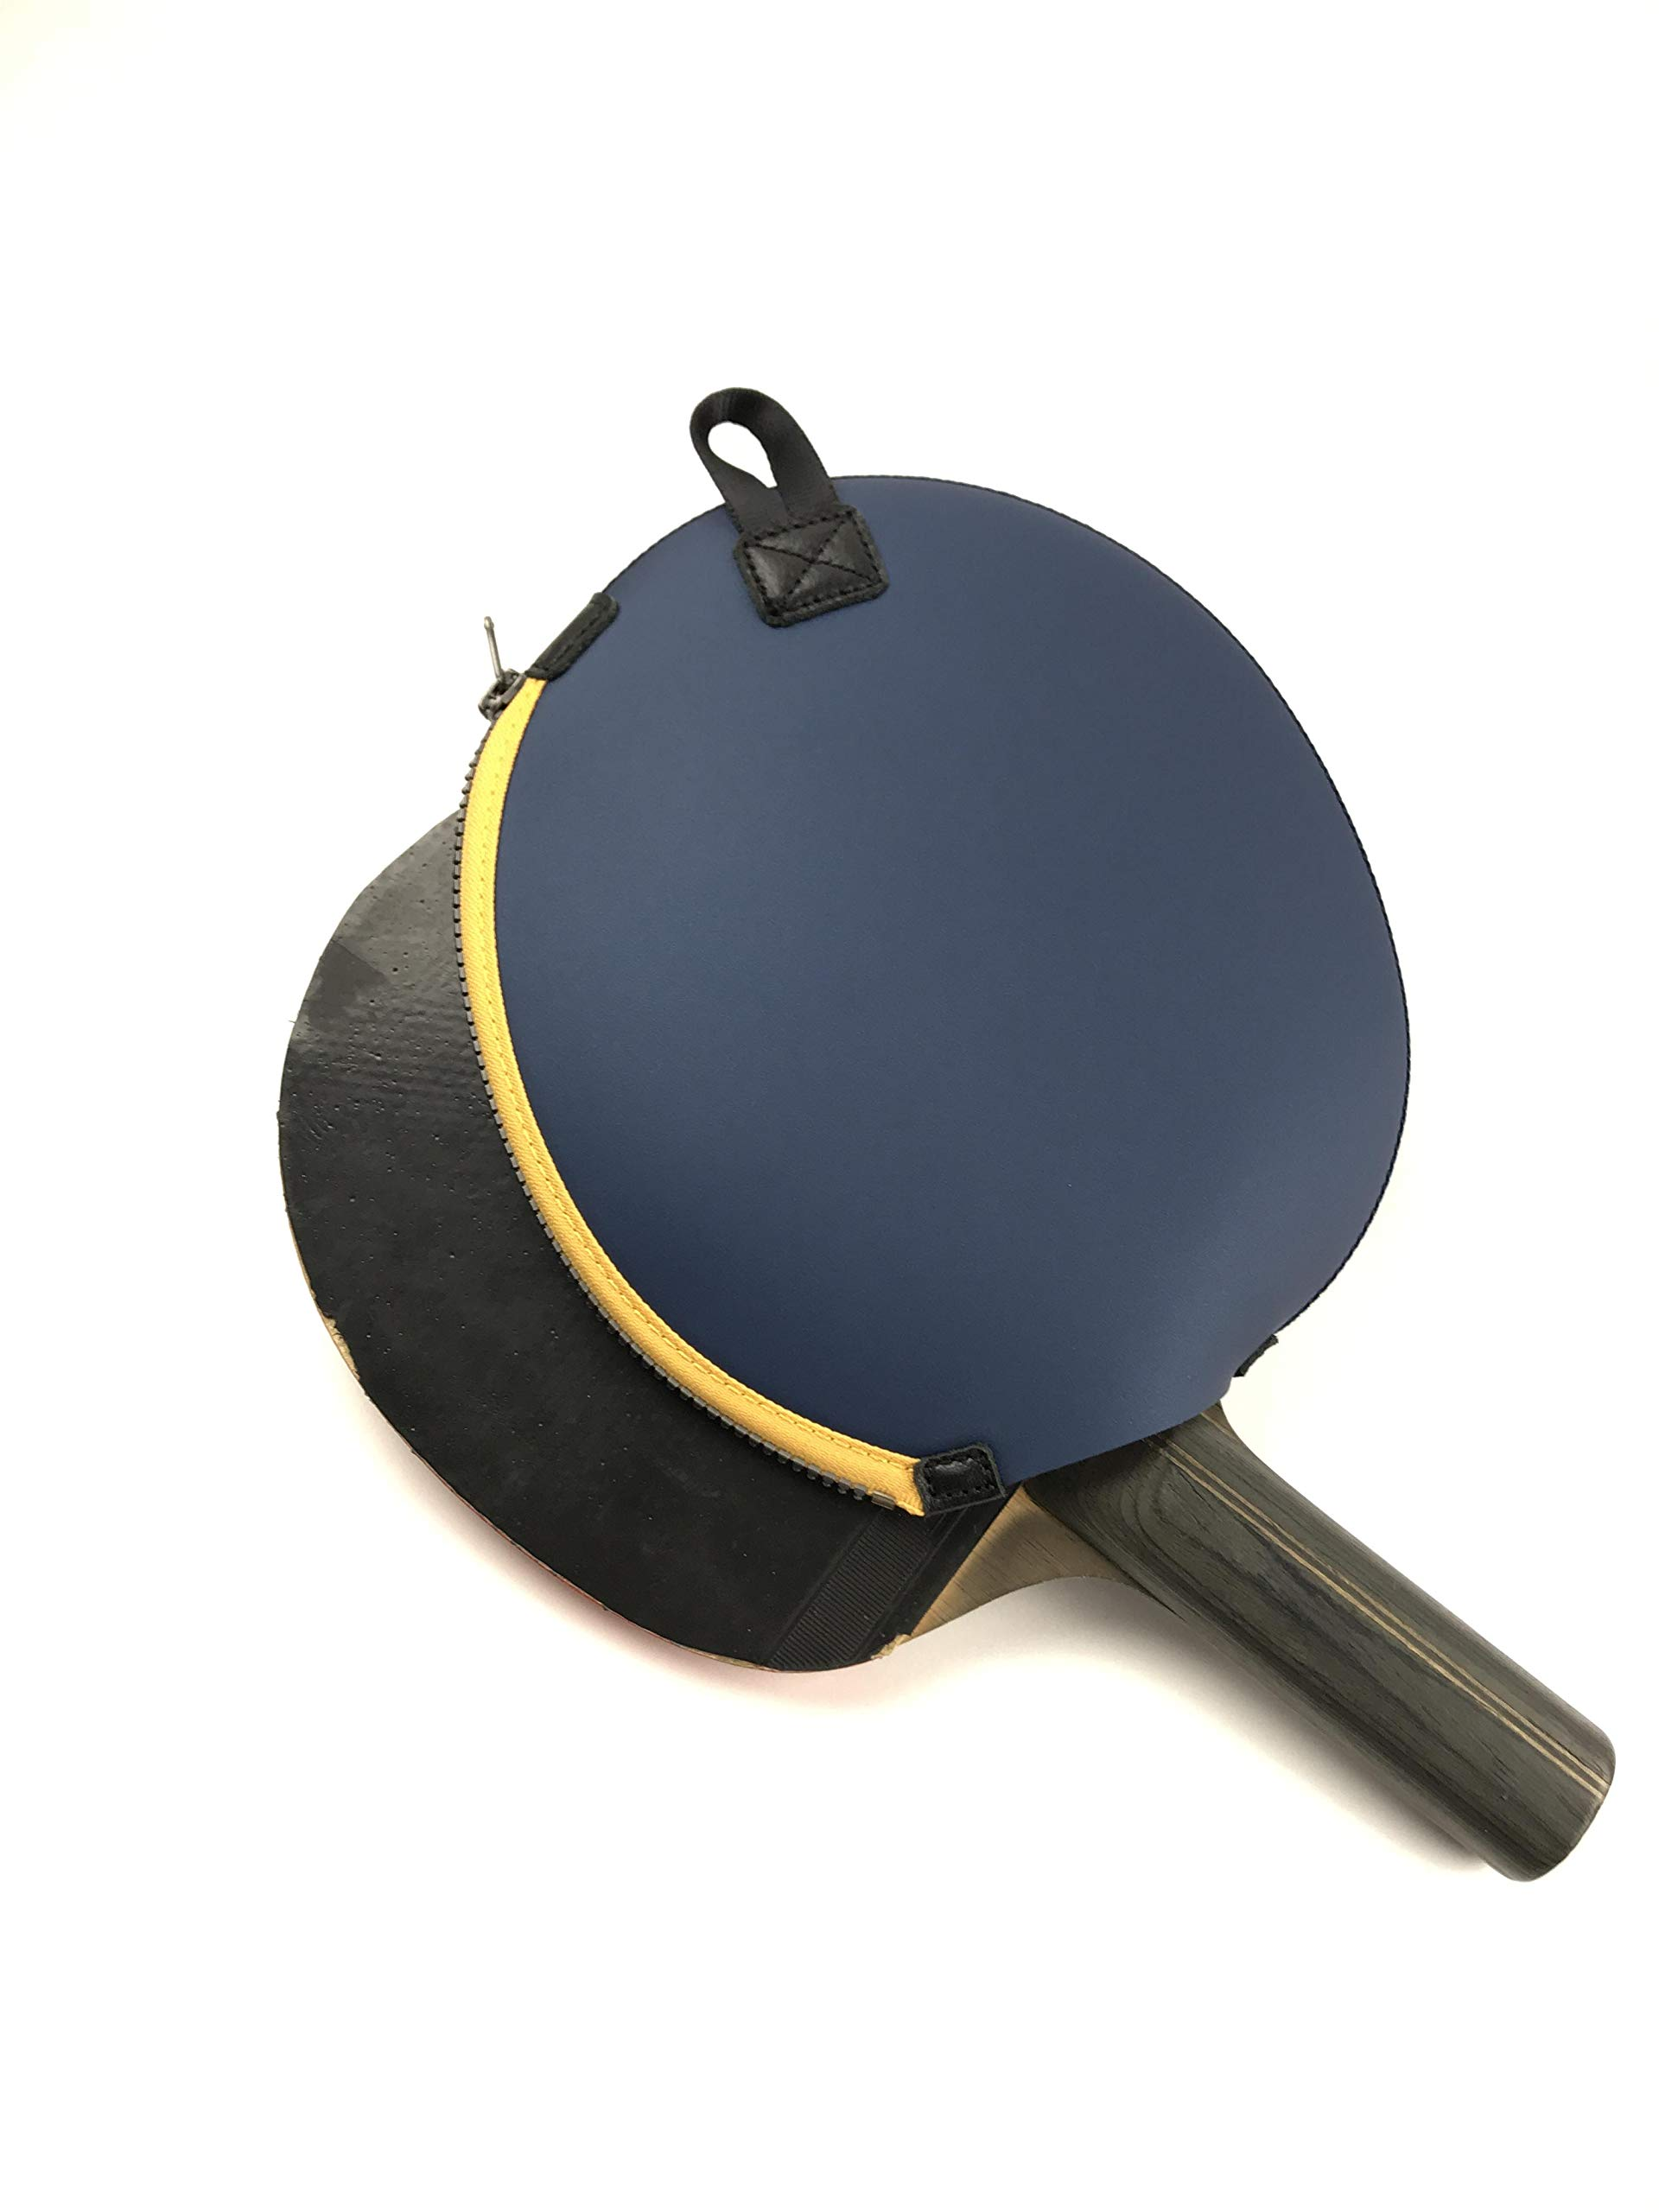 ONEJOY Ping Pong,Table Tennis Racquet Bag,Sleeves with Zipper AJ60,Loop to Hook,19cm x 17cm, for 1 Racquet/Racket/Paddle. by ONEJOY (Image #7)